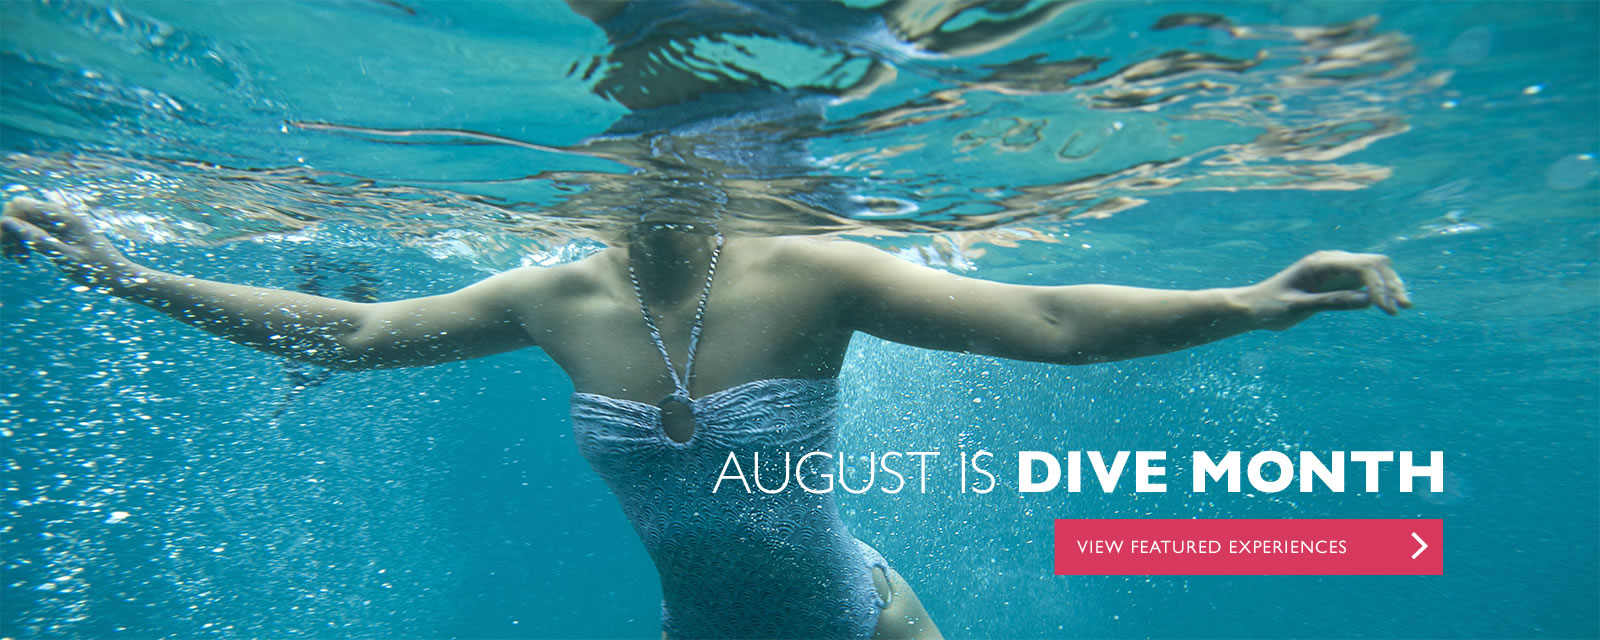 August is Dive Month at Travaasa